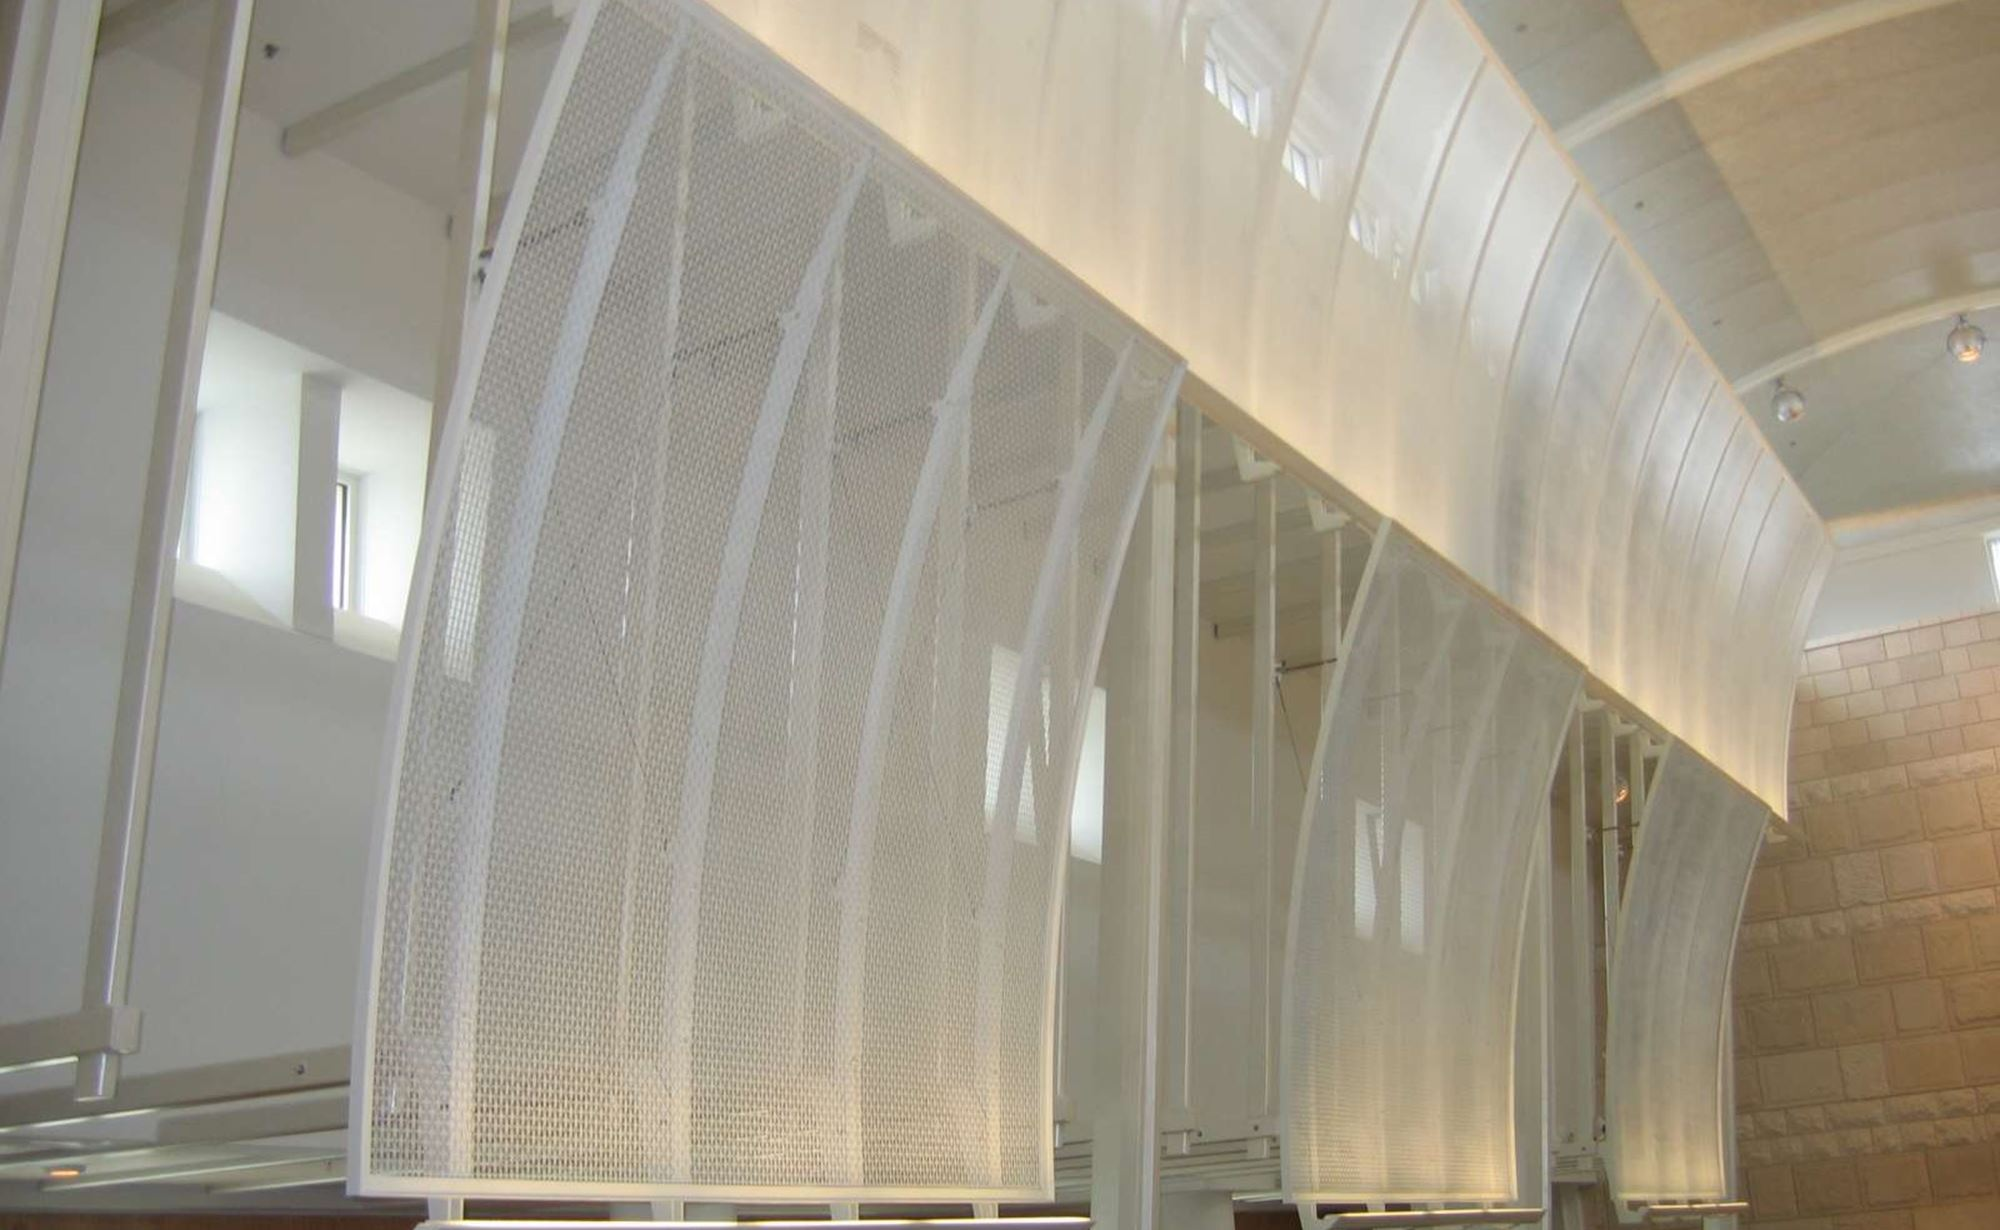 U.S. Navel Academy Jewish Chapel and Cambridge Architectural Mesh